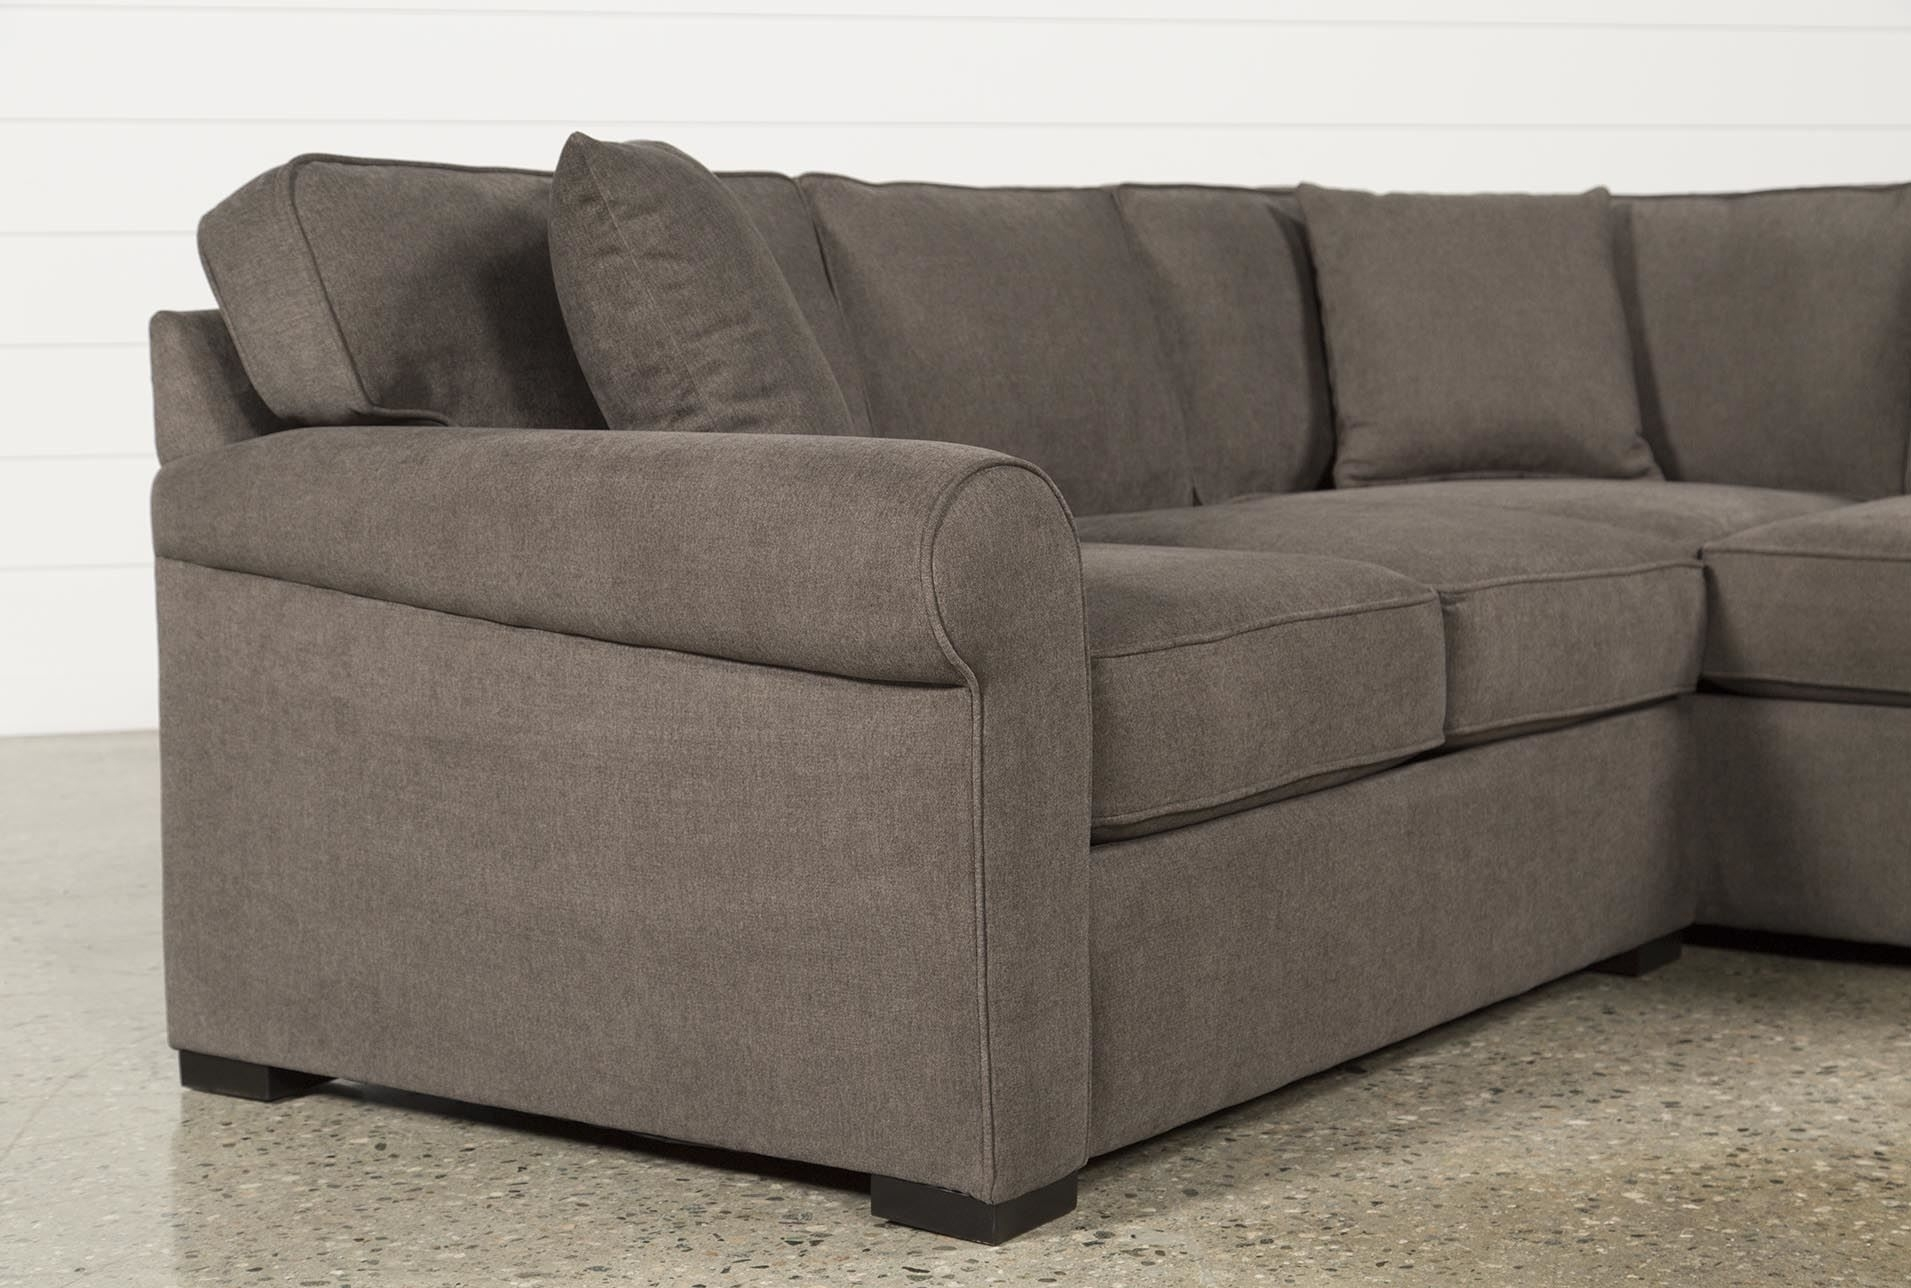 Elm Grande 2 Piece Sectional, Grey, Sofas | Room Inspiration with Elm Grande Ii 2 Piece Sectionals (Image 13 of 30)